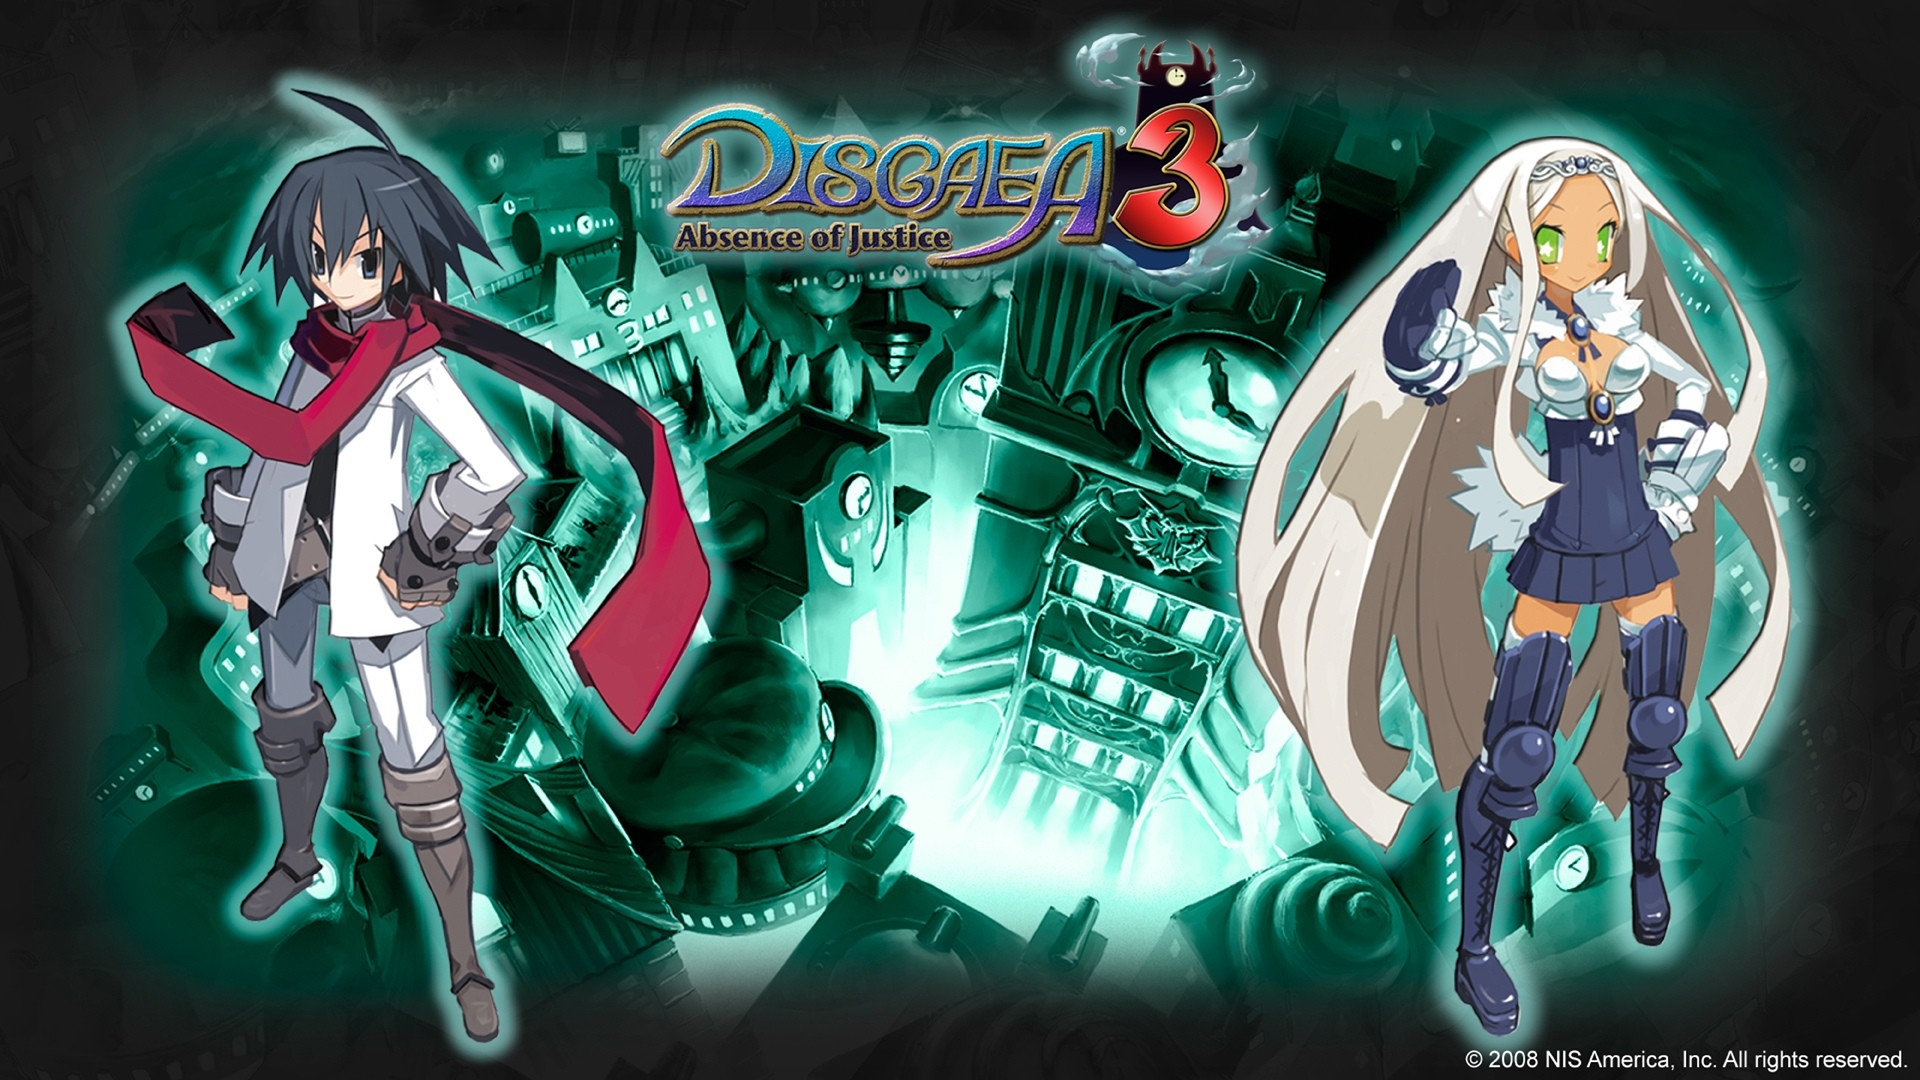 1920x1080 Disgaea 3 363580 - WallDevil Video Game Disgaea wallpapers (Desktop, Phone,  Tablet) - Awesome .